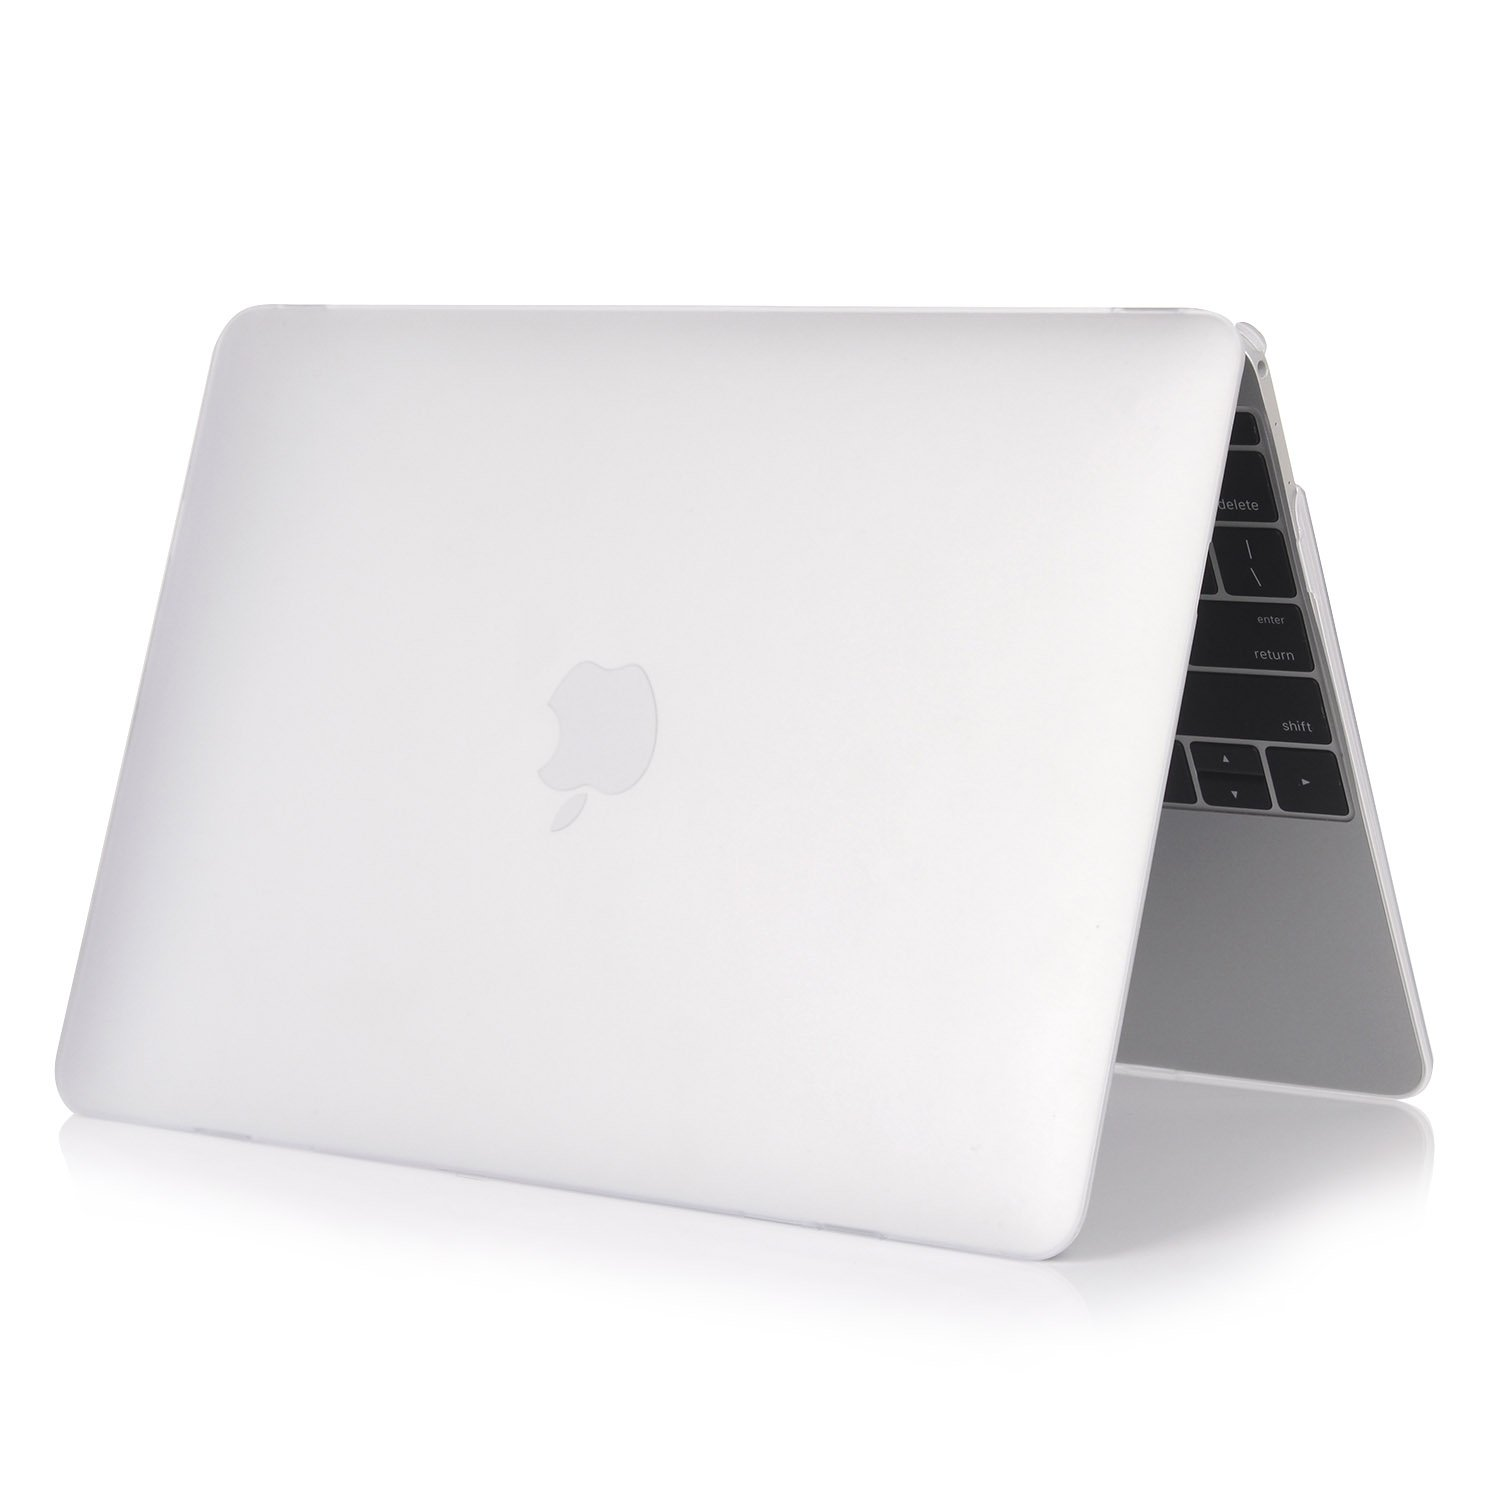 """13.3"""" MOSISO TRANSPARENT Matte Case for MacBook Air Laptop 9 COLORS FAST FREE SHIPPING USA"""